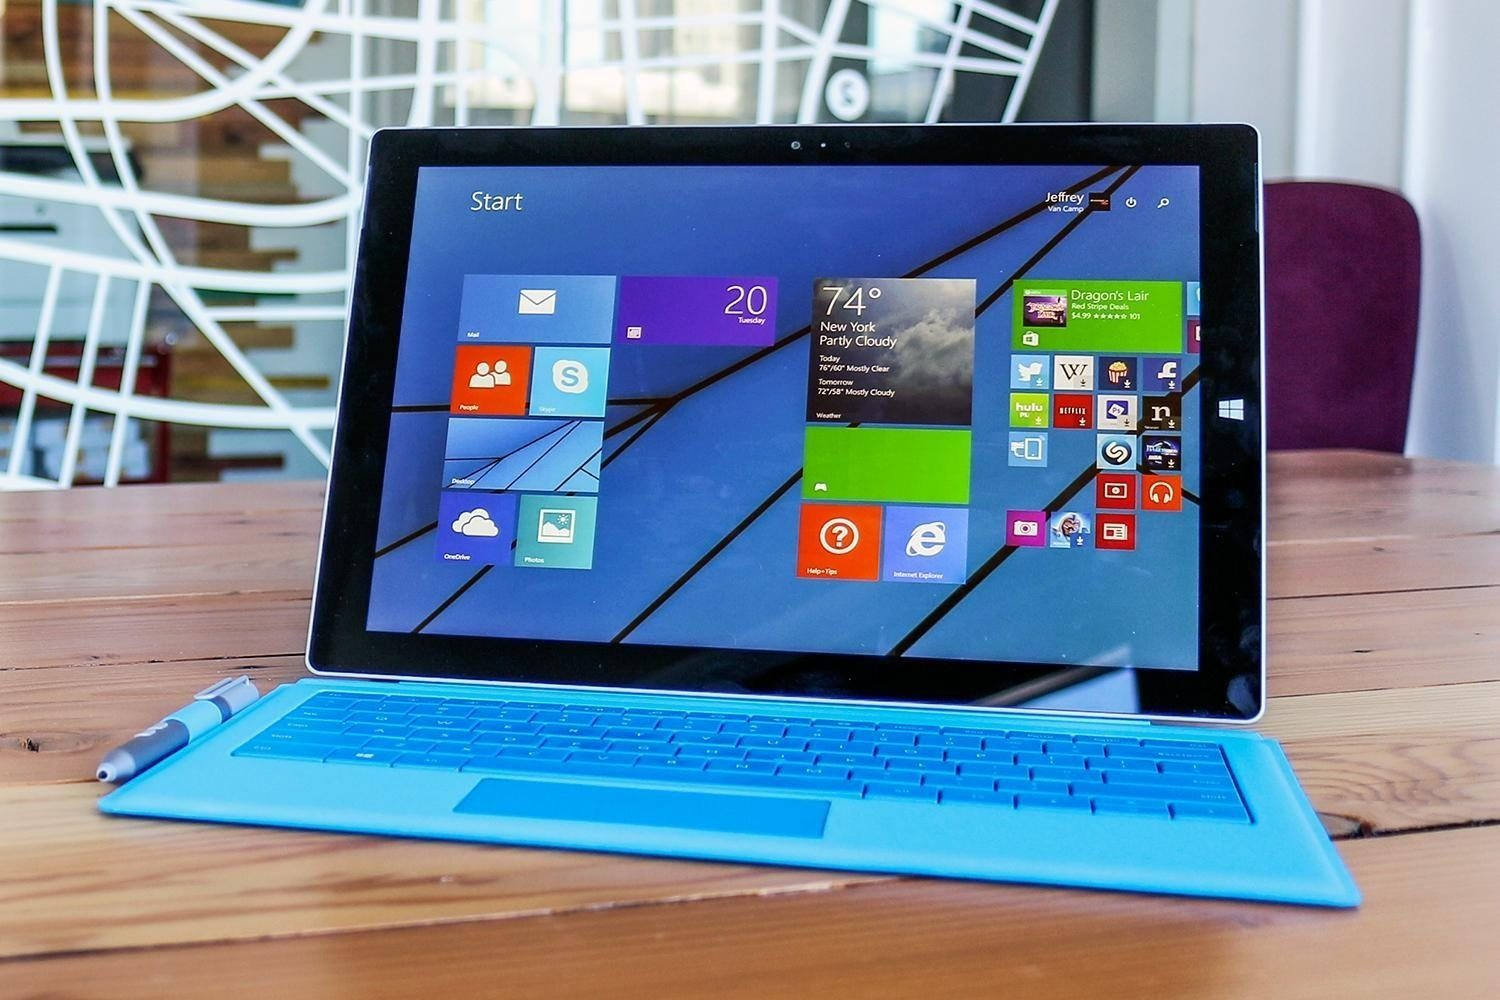 microsoft-surface-pro-3-hands-on-1500x1000-1500x1000